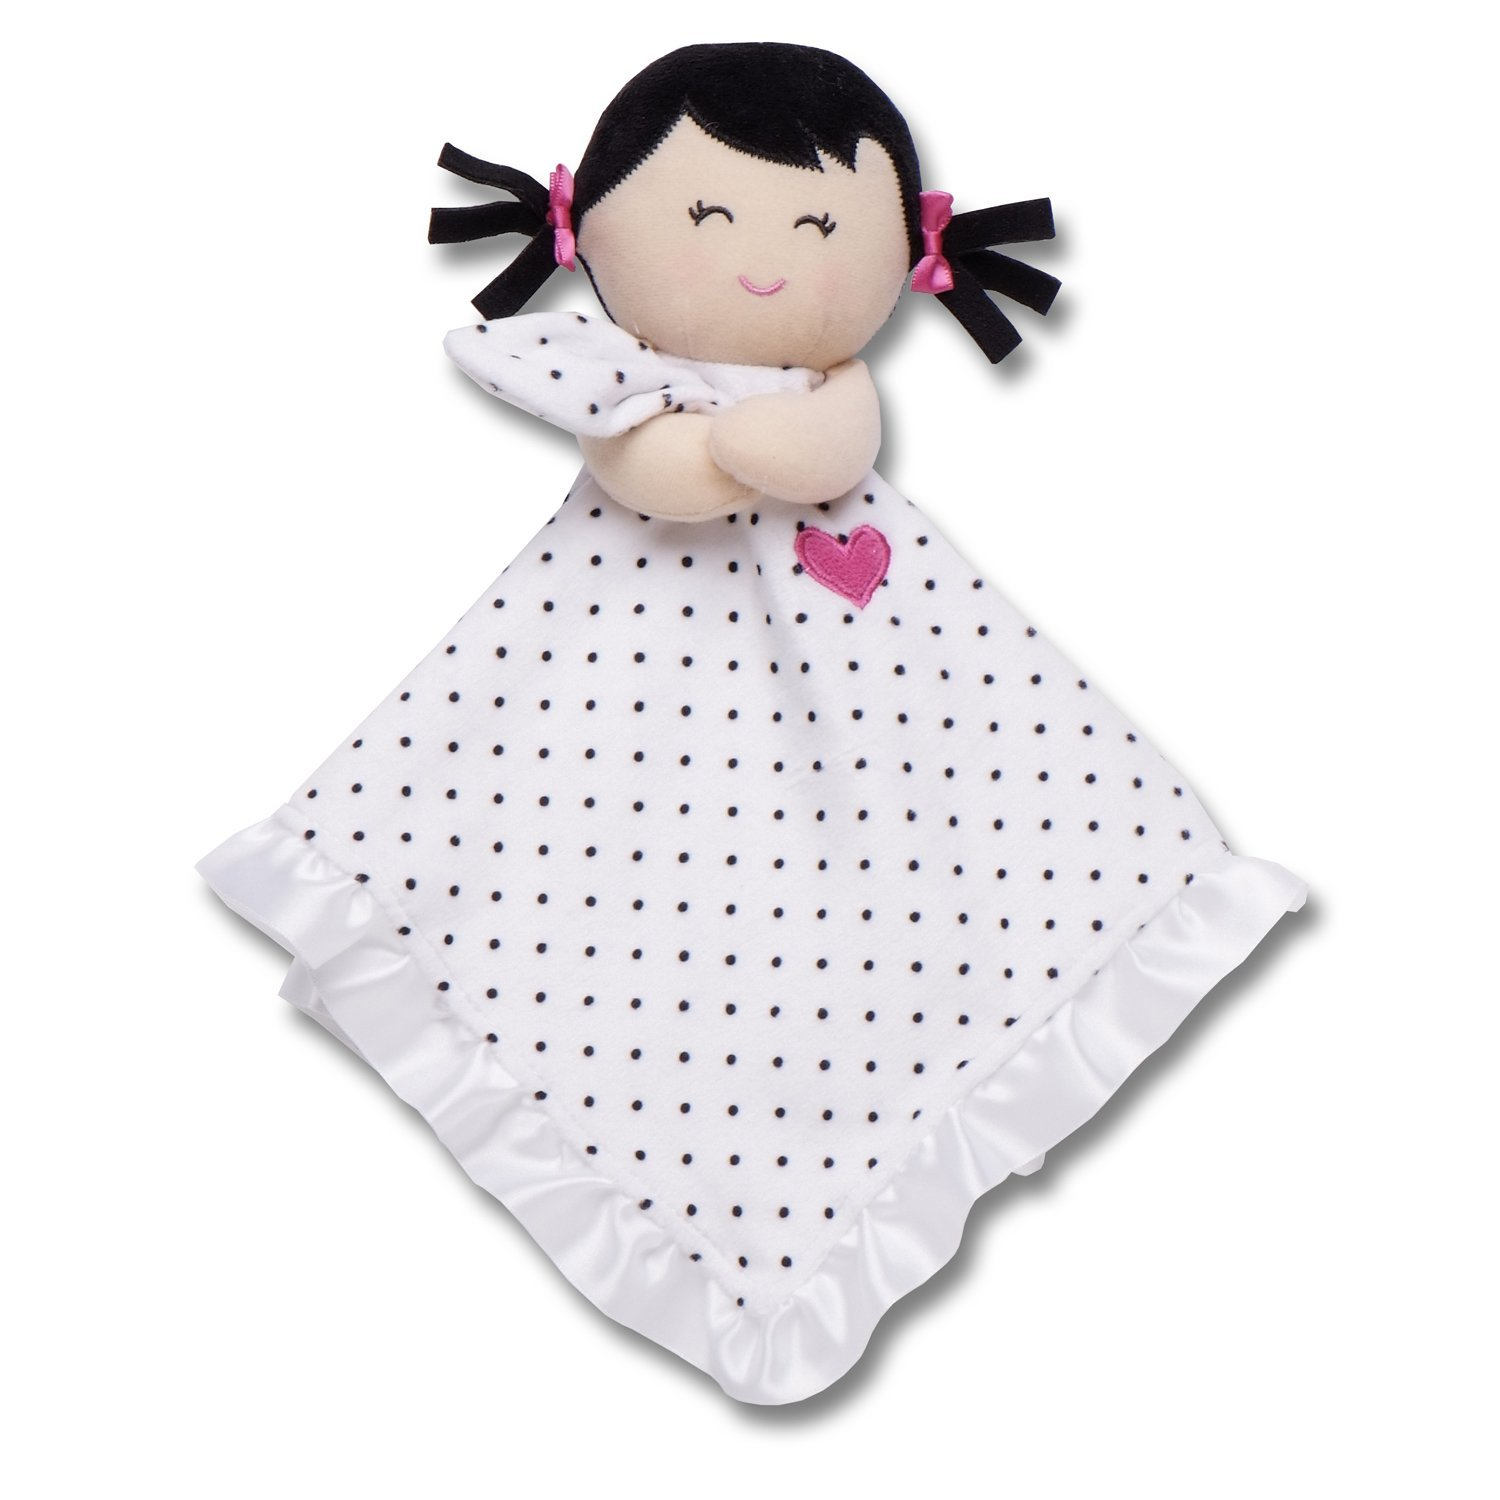 Carter's Security Blanket Polka Dot Doll